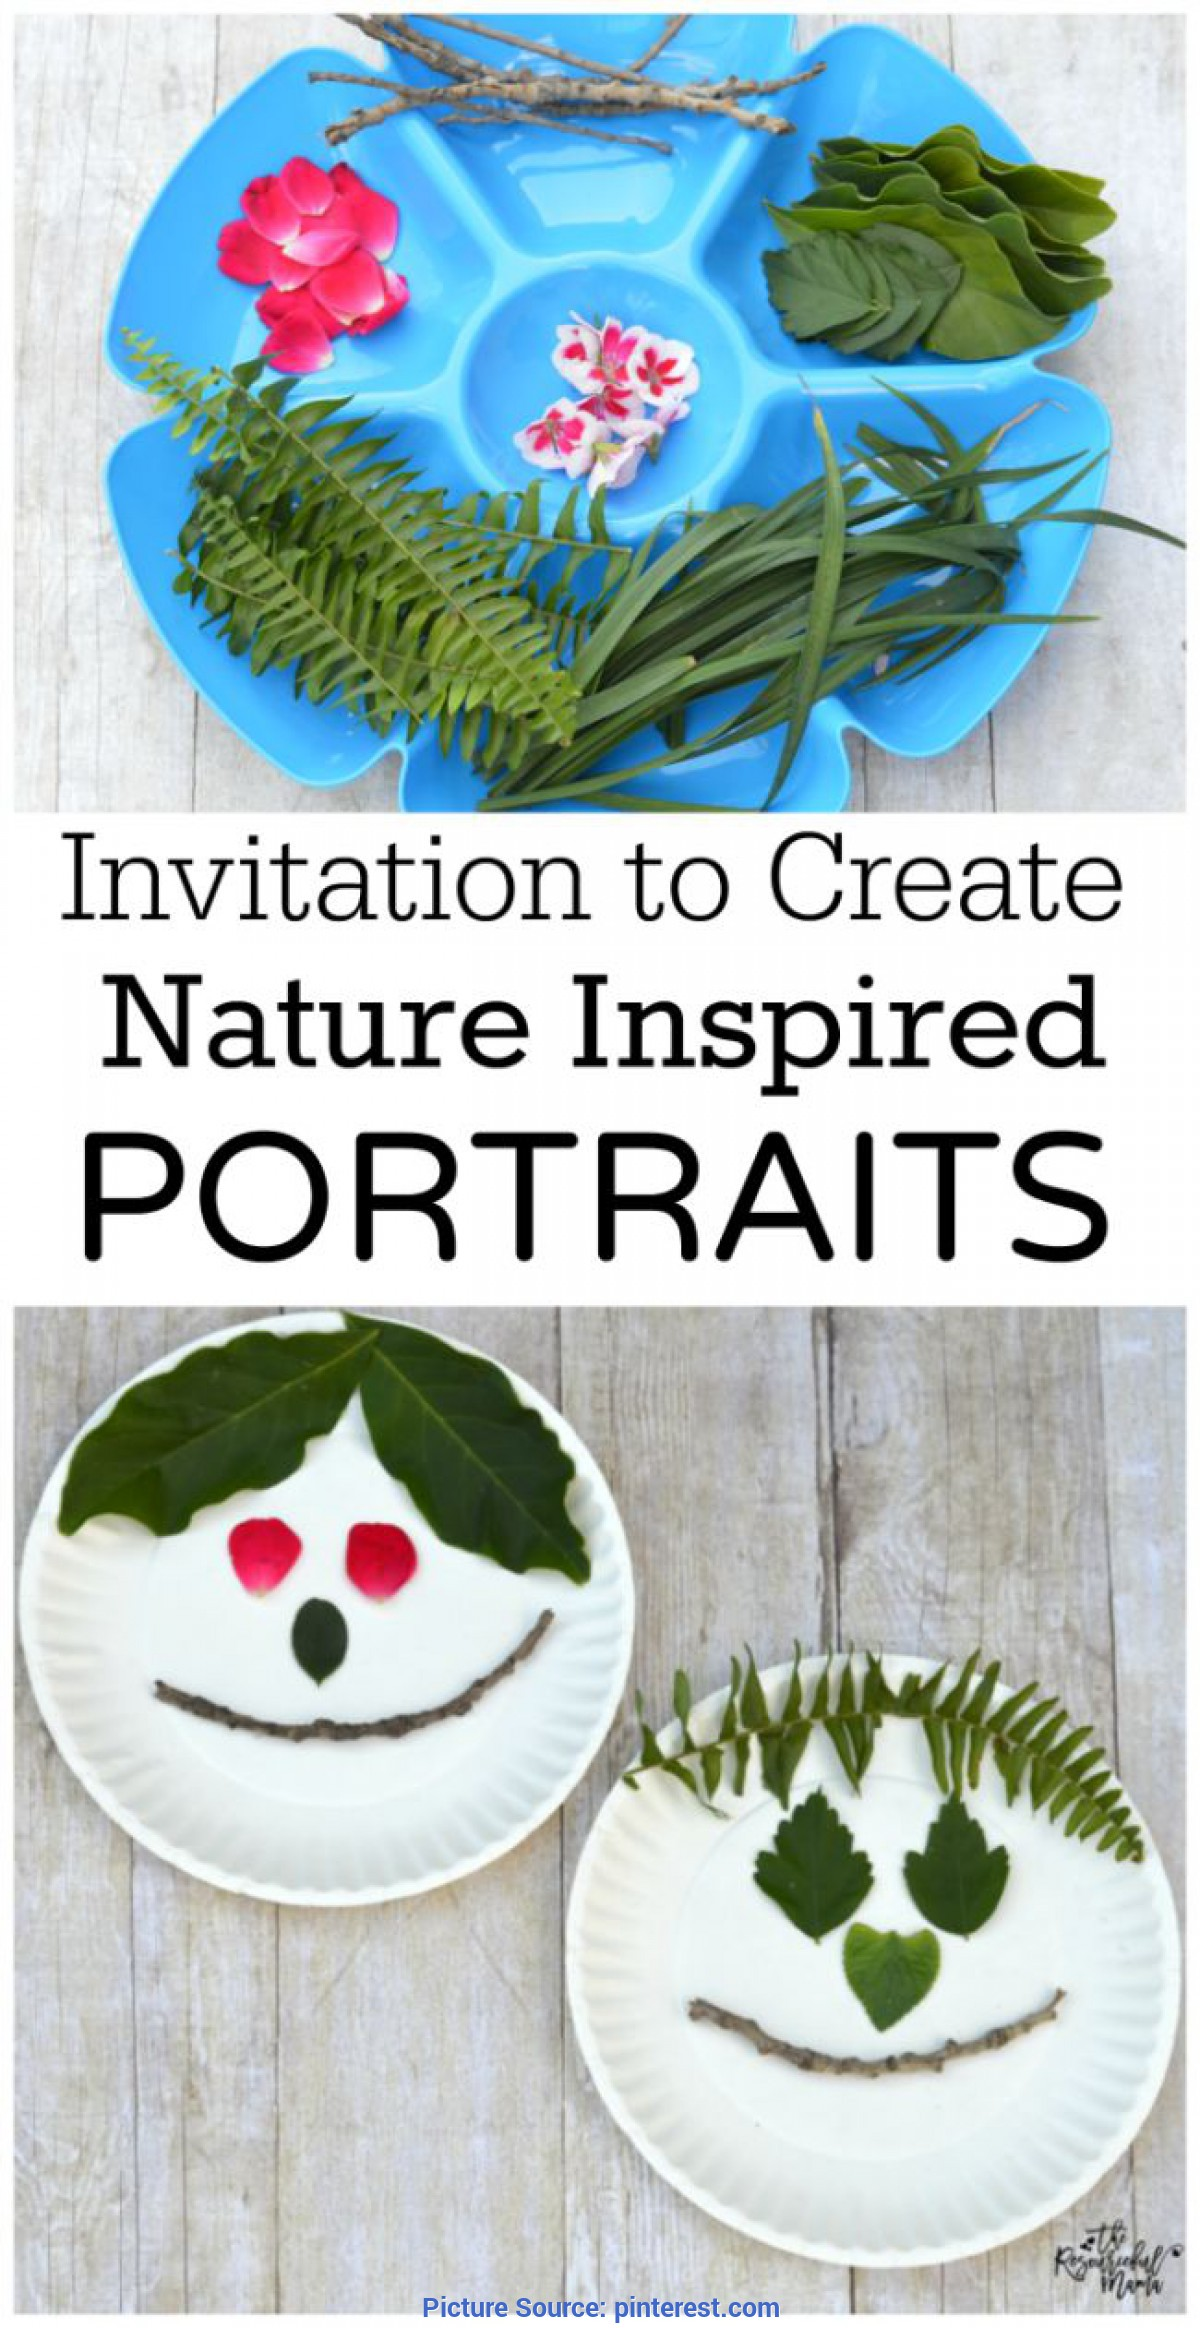 Newest Nature Lesson Plans For Toddlers 13 Best All About Me Images On Pinterest | Diy, Candies And Crea